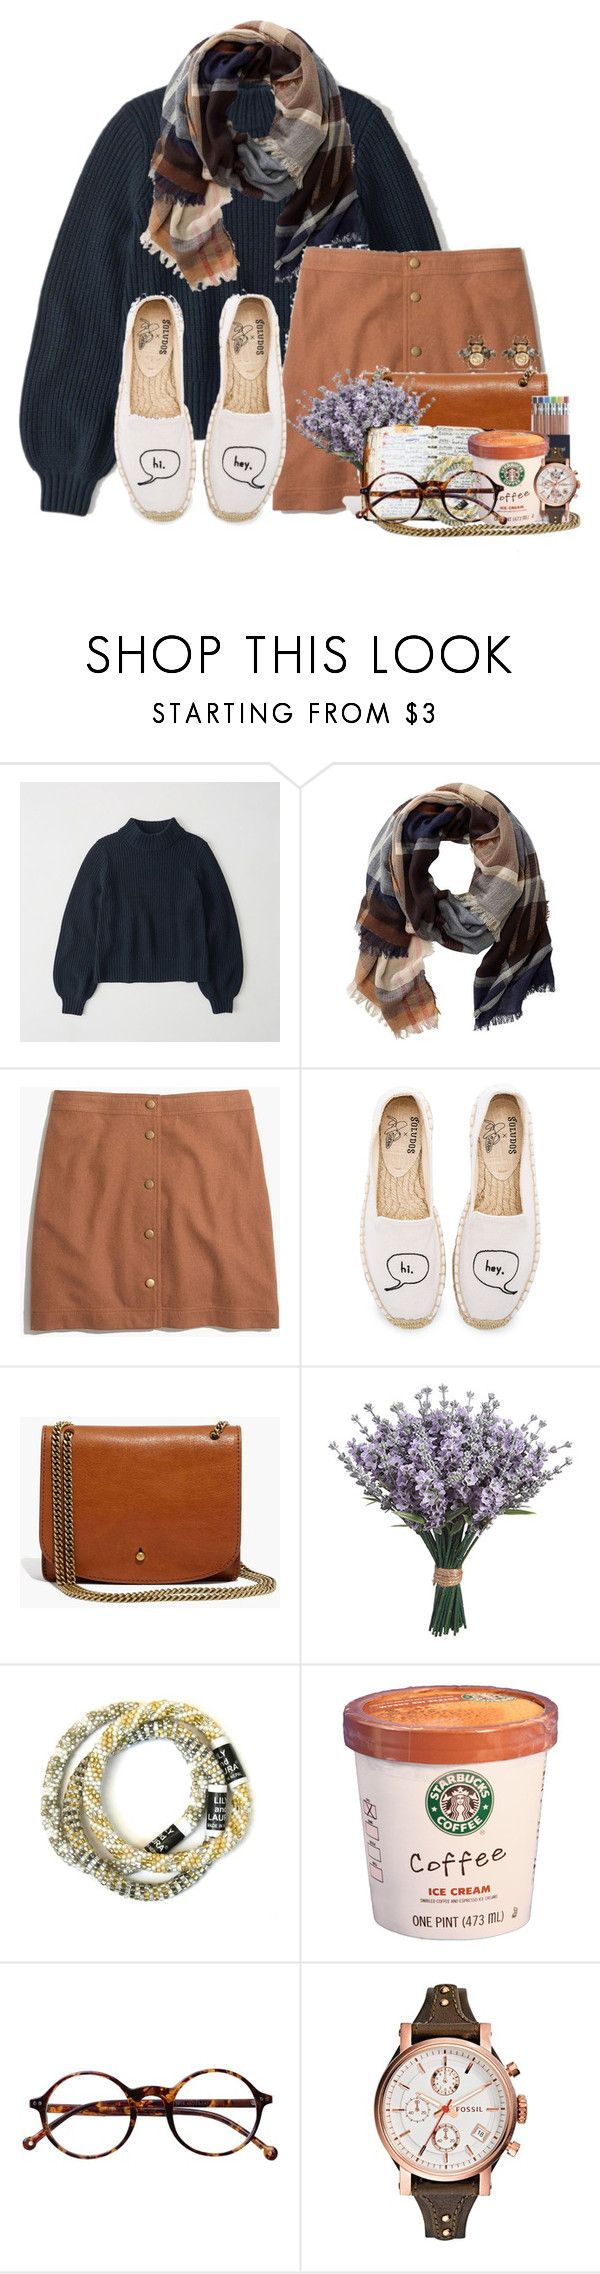 """literally everyone in my class has a cold"" by flroasburn ❤ liked on Polyvore featuring Abercrombie & Fitch, TravelSmith, Madewell, Soludos, J.Crew, Retrò, FOSSIL and Gucci"